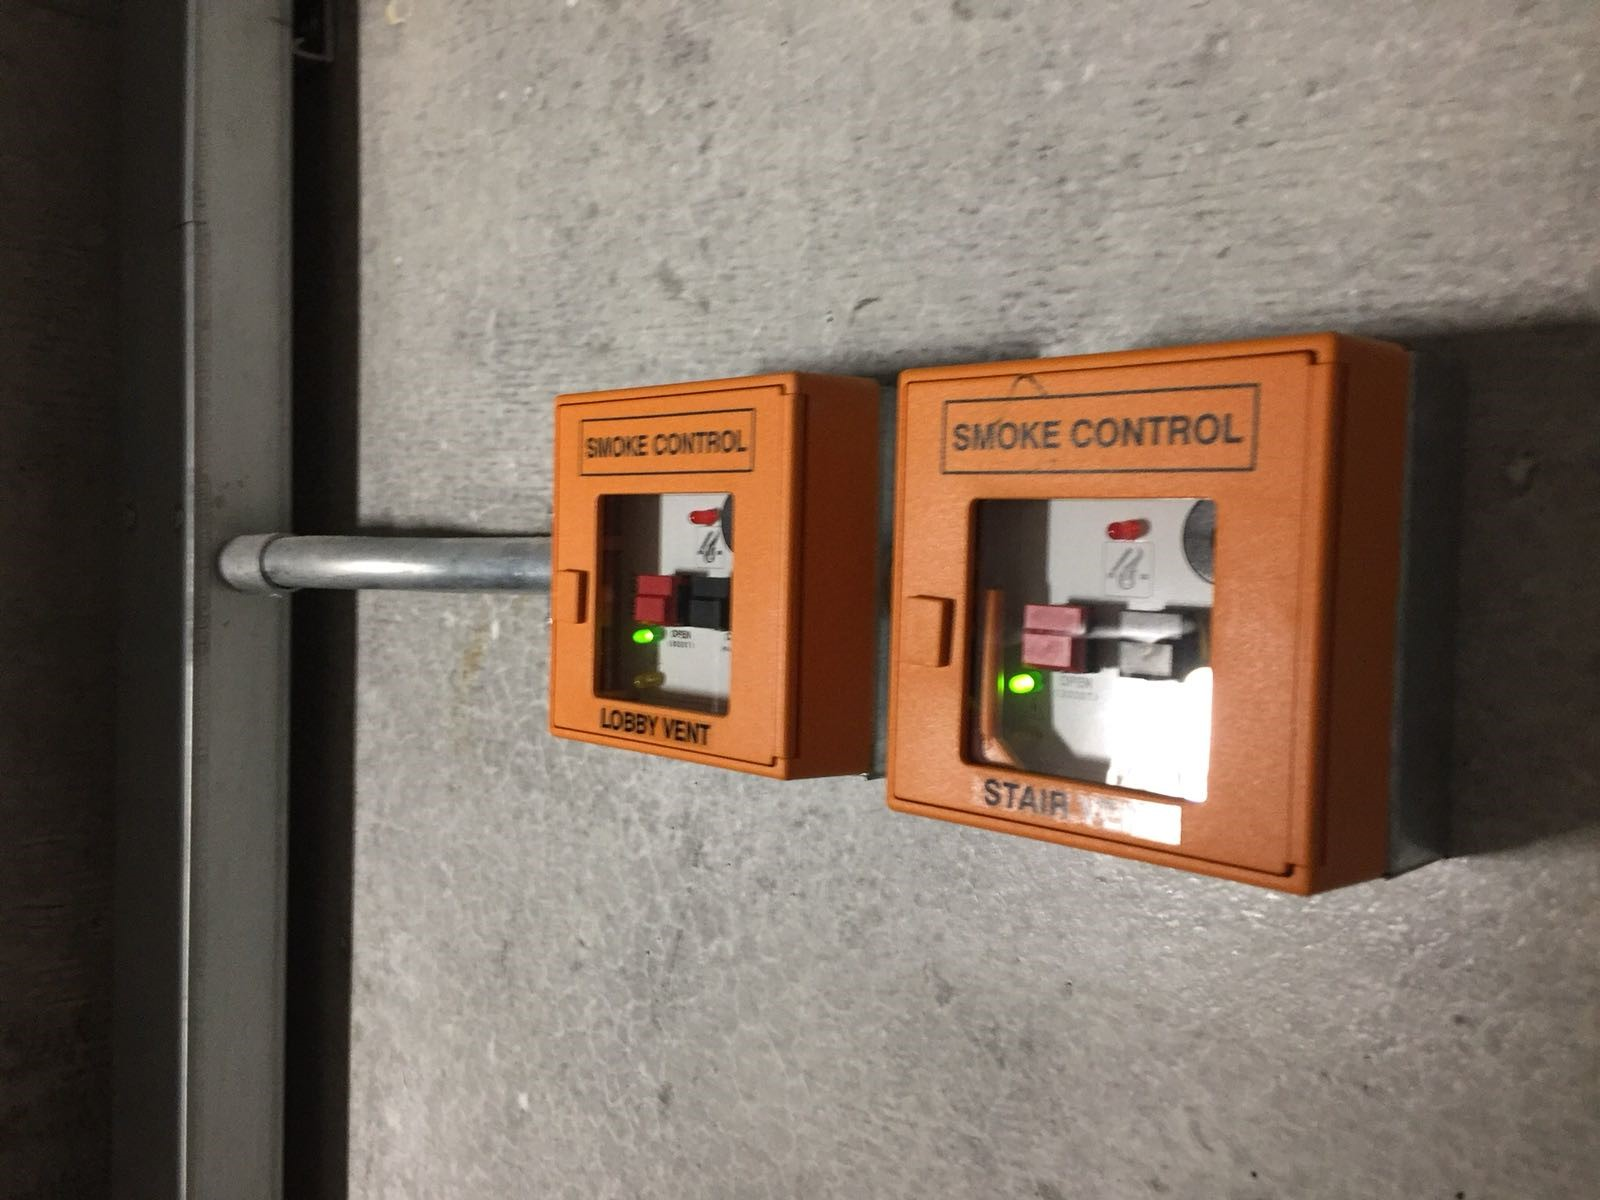 Two orange smoke control boxes located next to each other on a wall